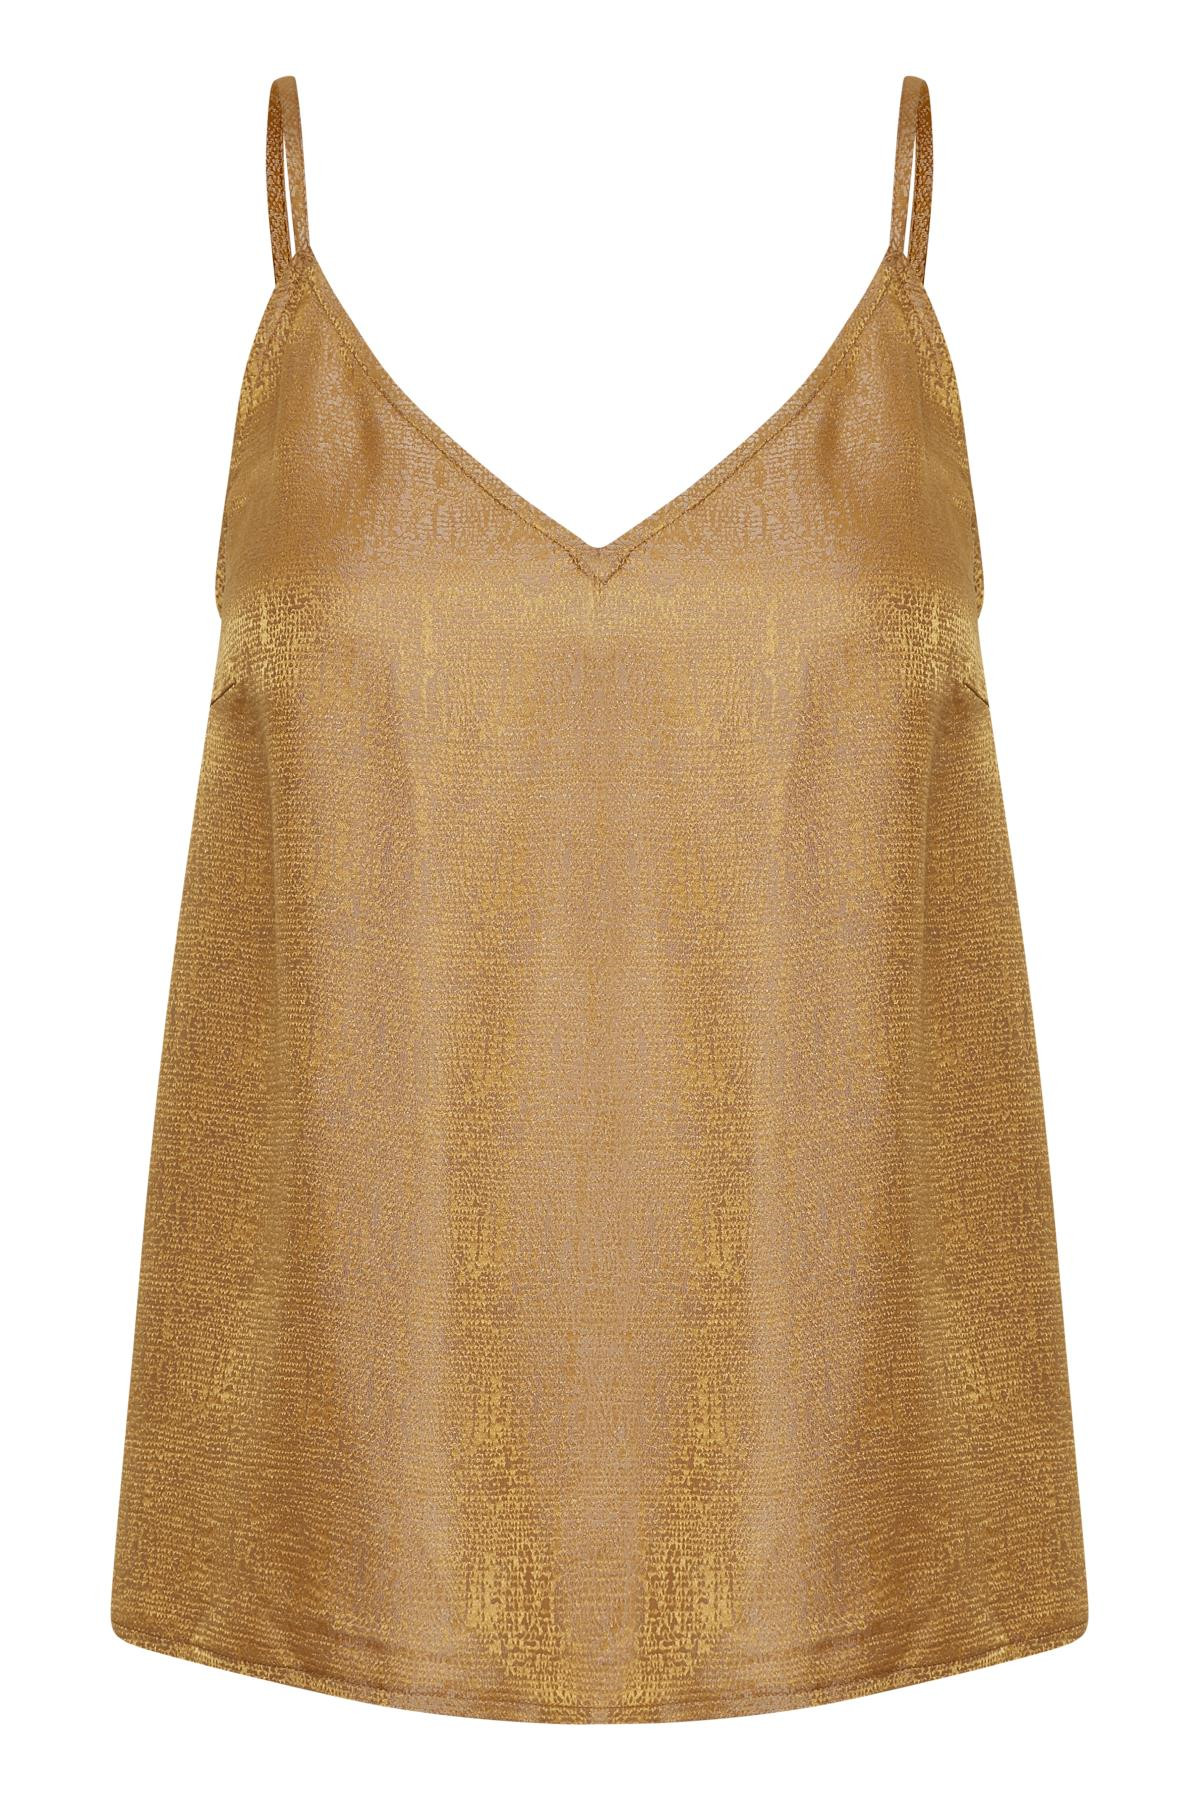 Image of   GESTUZ CAMMAGZ SINGLET (Narcissus Yellow 90576, 34)